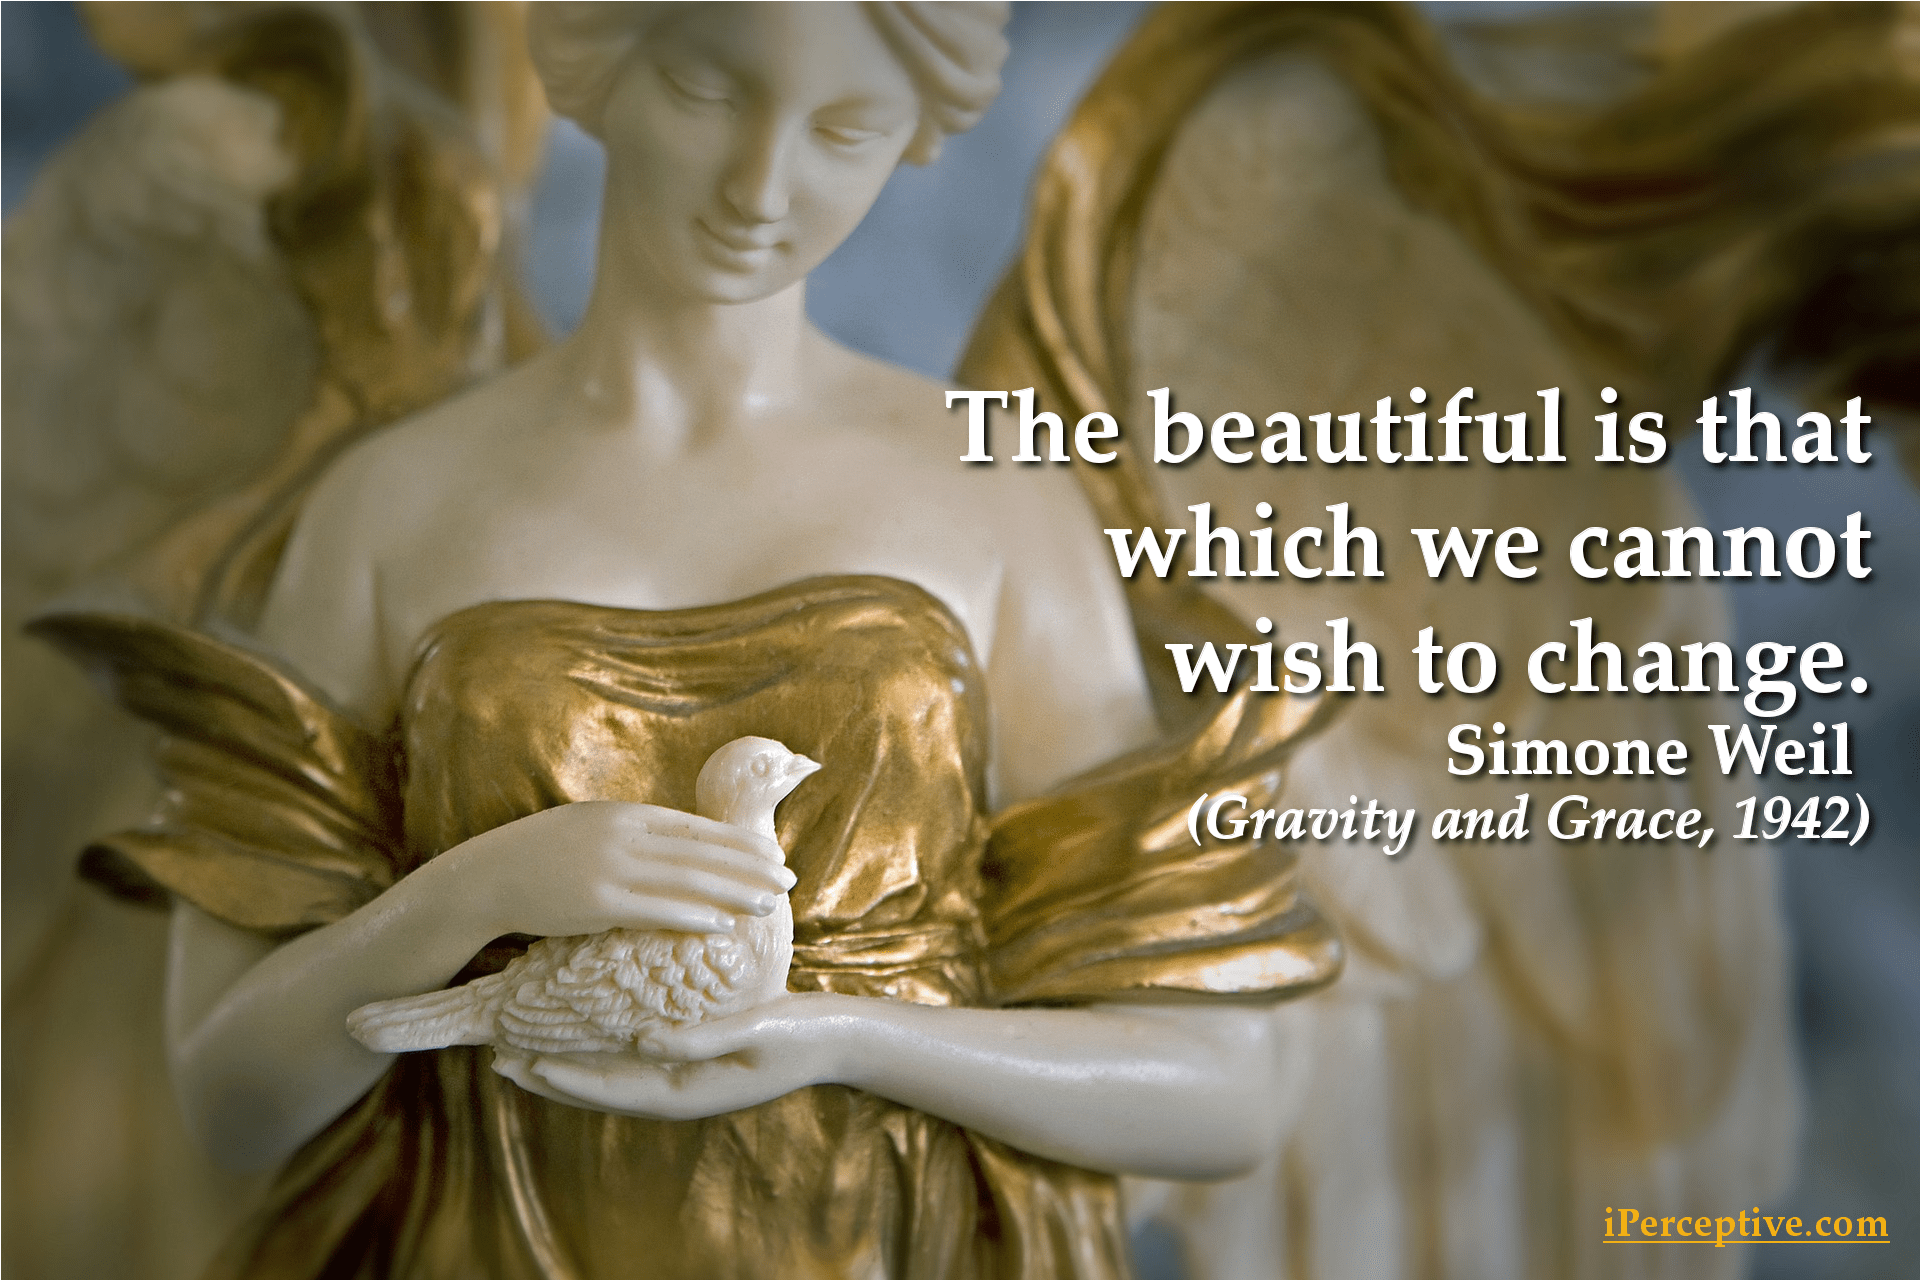 Simone Weil Christian Mystic Quote: The beautiful is that which we cannot wish to change